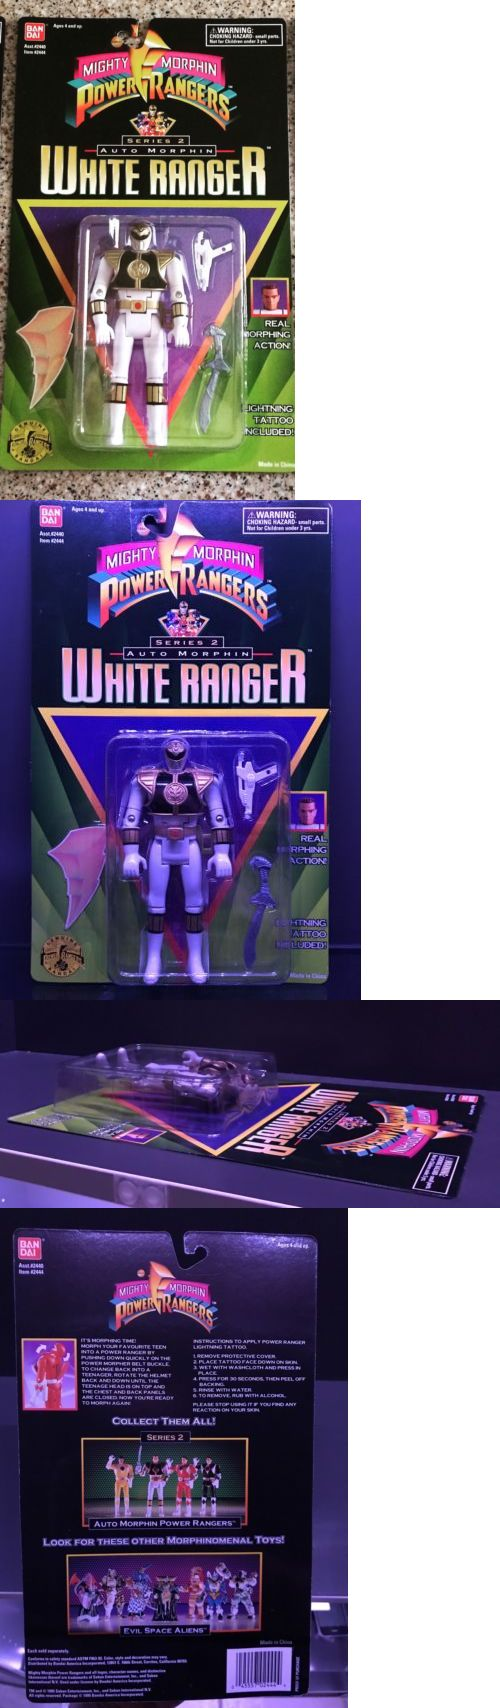 TV Movie and Video Games 75708: Power Rangers Series 2 Auto Morphin White Ranger Action Figure Bandai 1995 Mmpr -> BUY IT NOW ONLY: $235 on eBay!